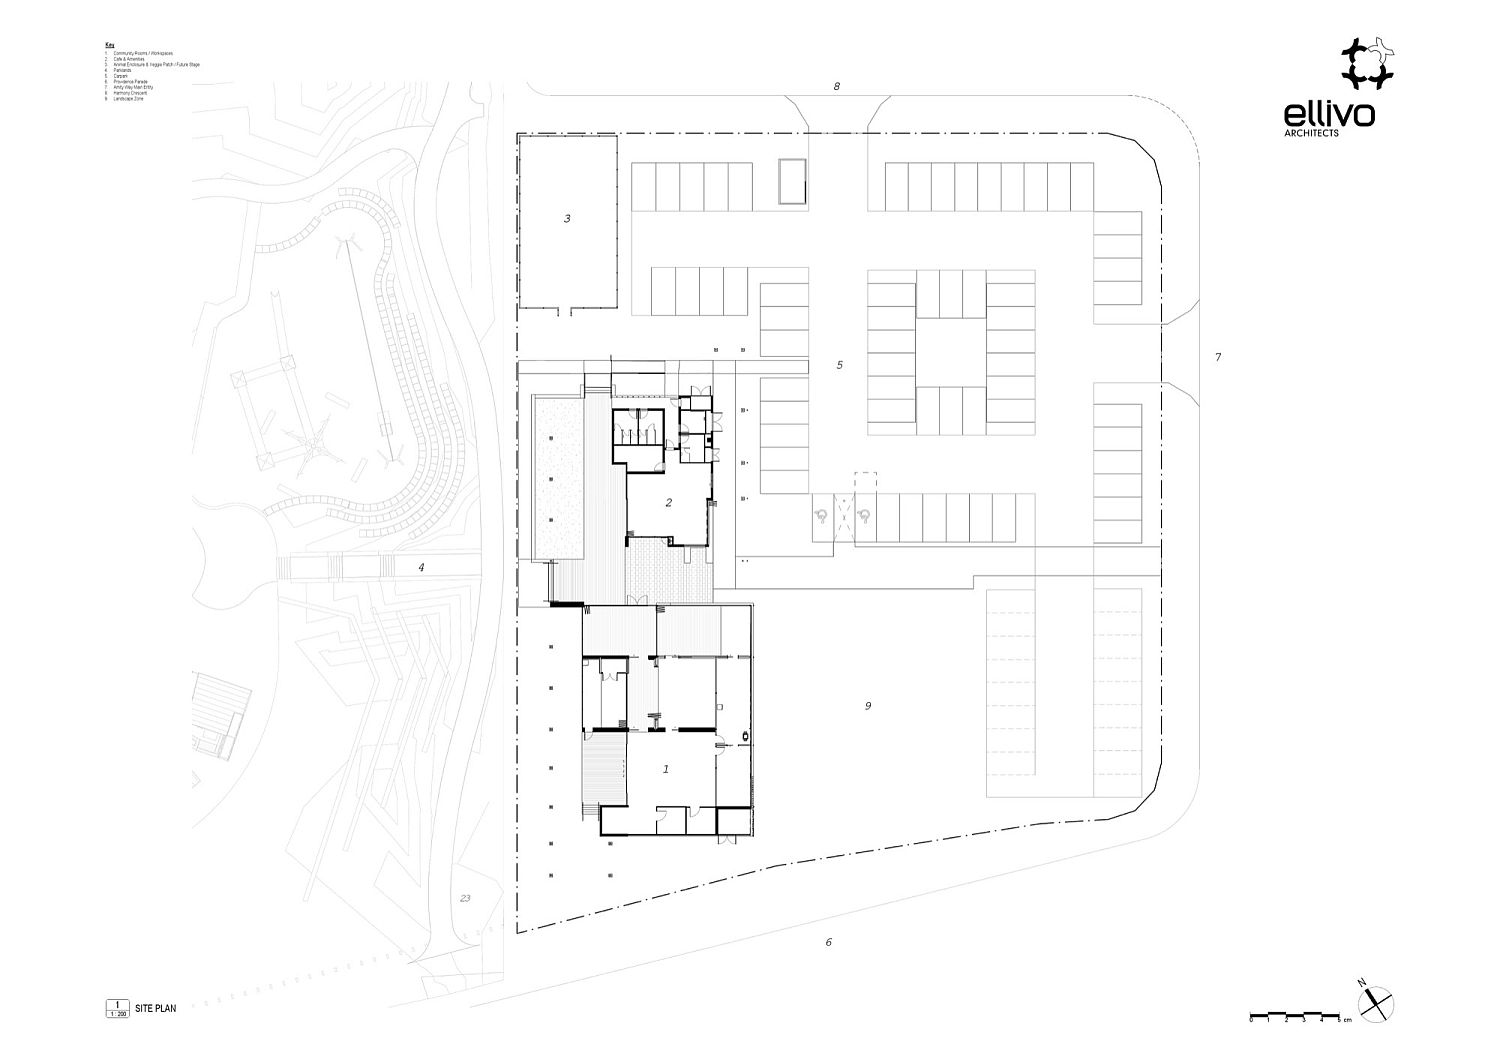 Site plan of Providence Neighbourhood Centre